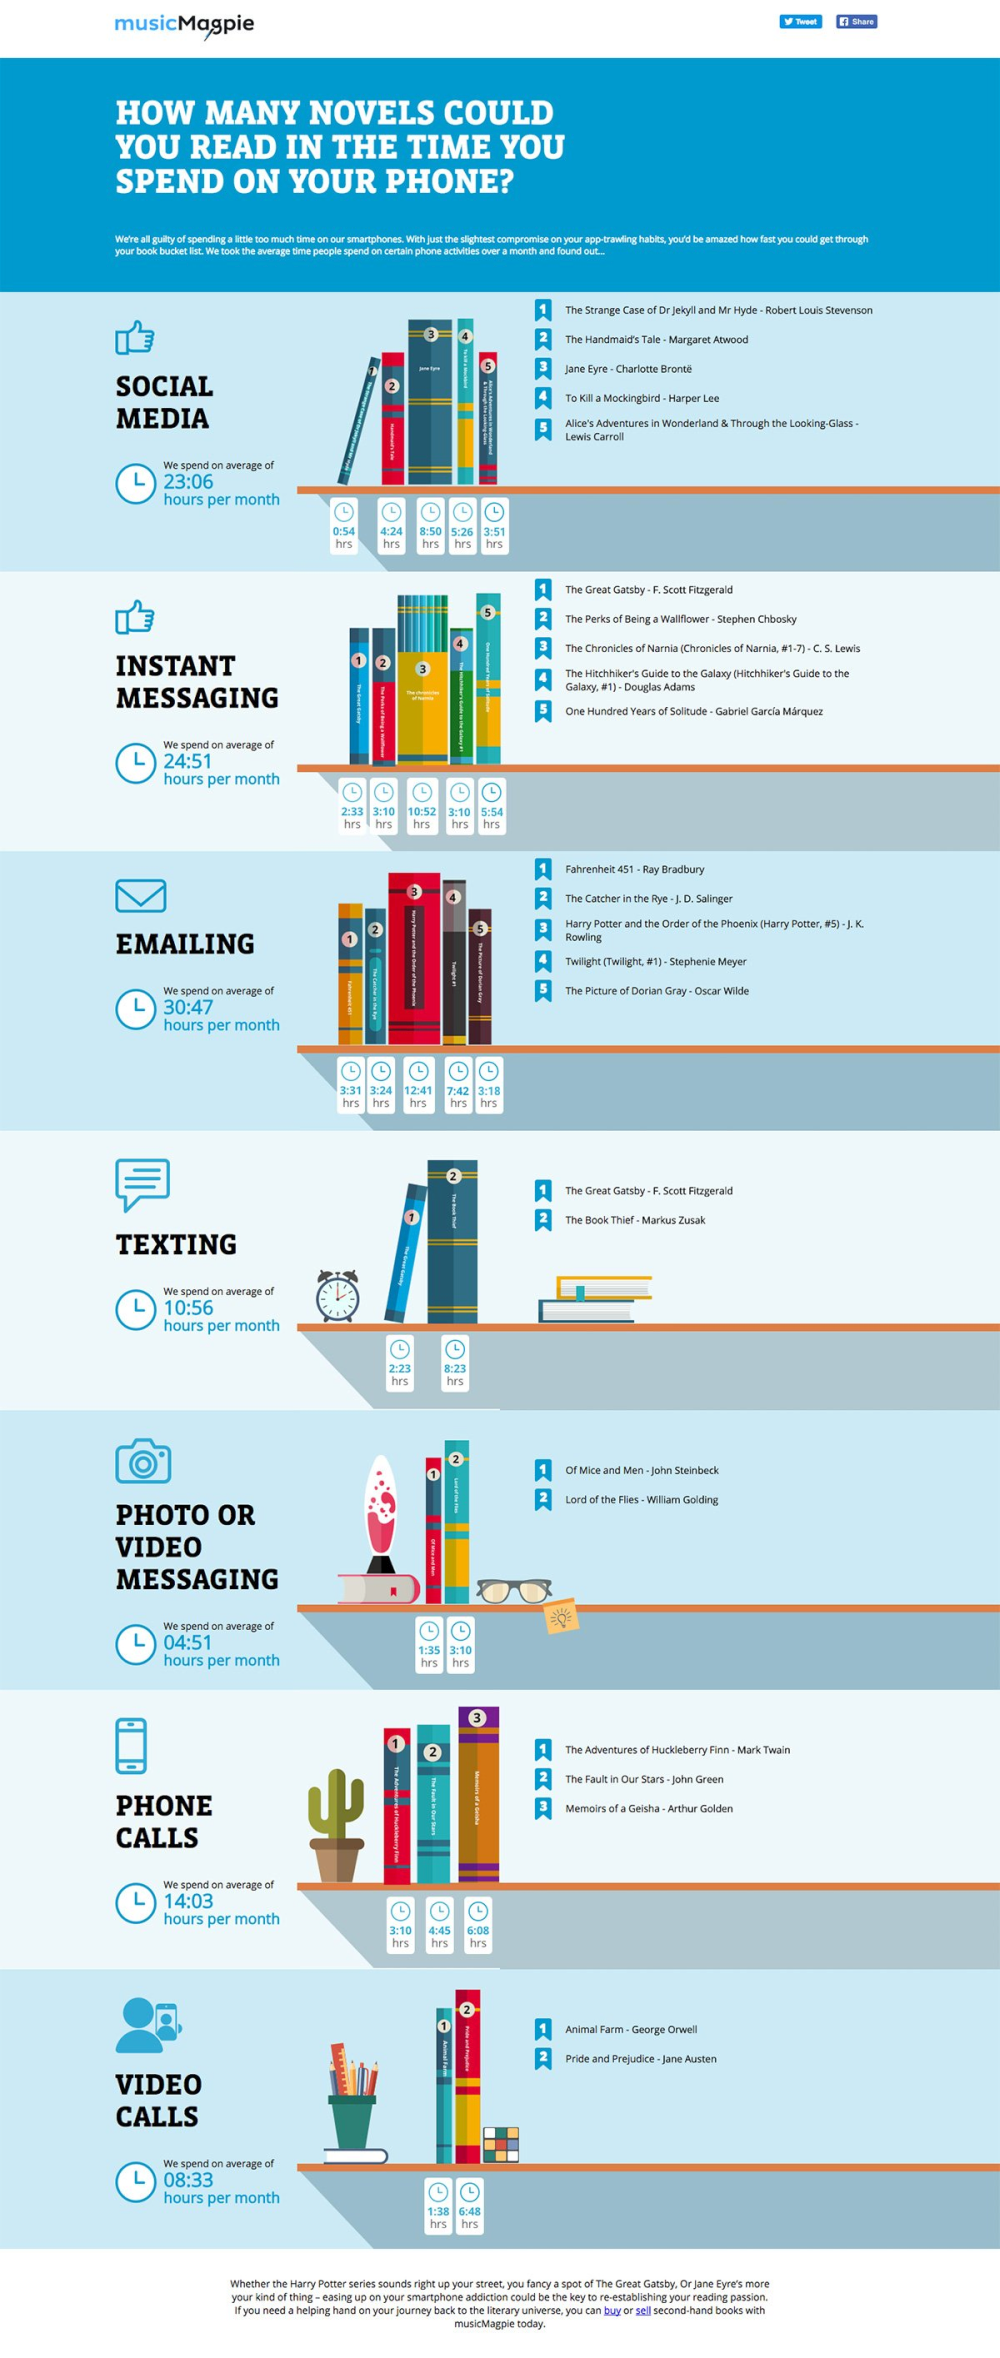 Find More Time for Reading Infographic